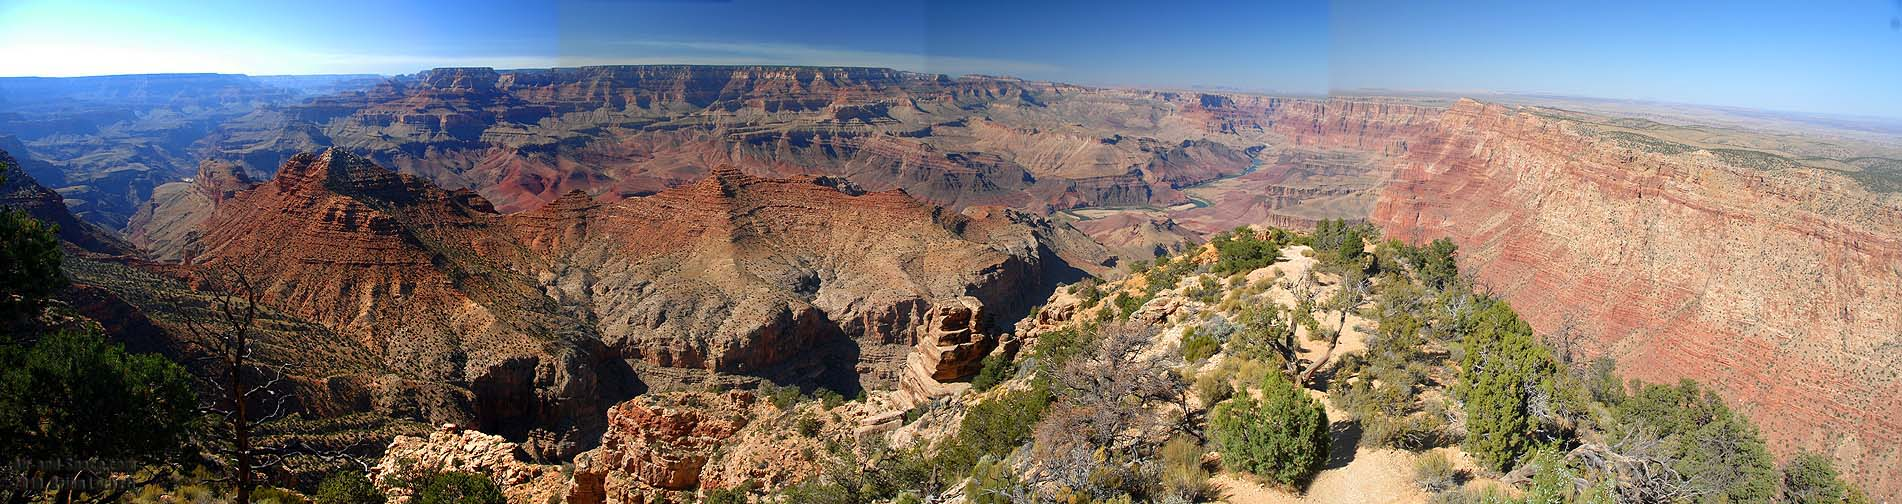 Grand Canyon, Vermilion Cliffs, and Marble Canyon, September 24 - 25, 2010